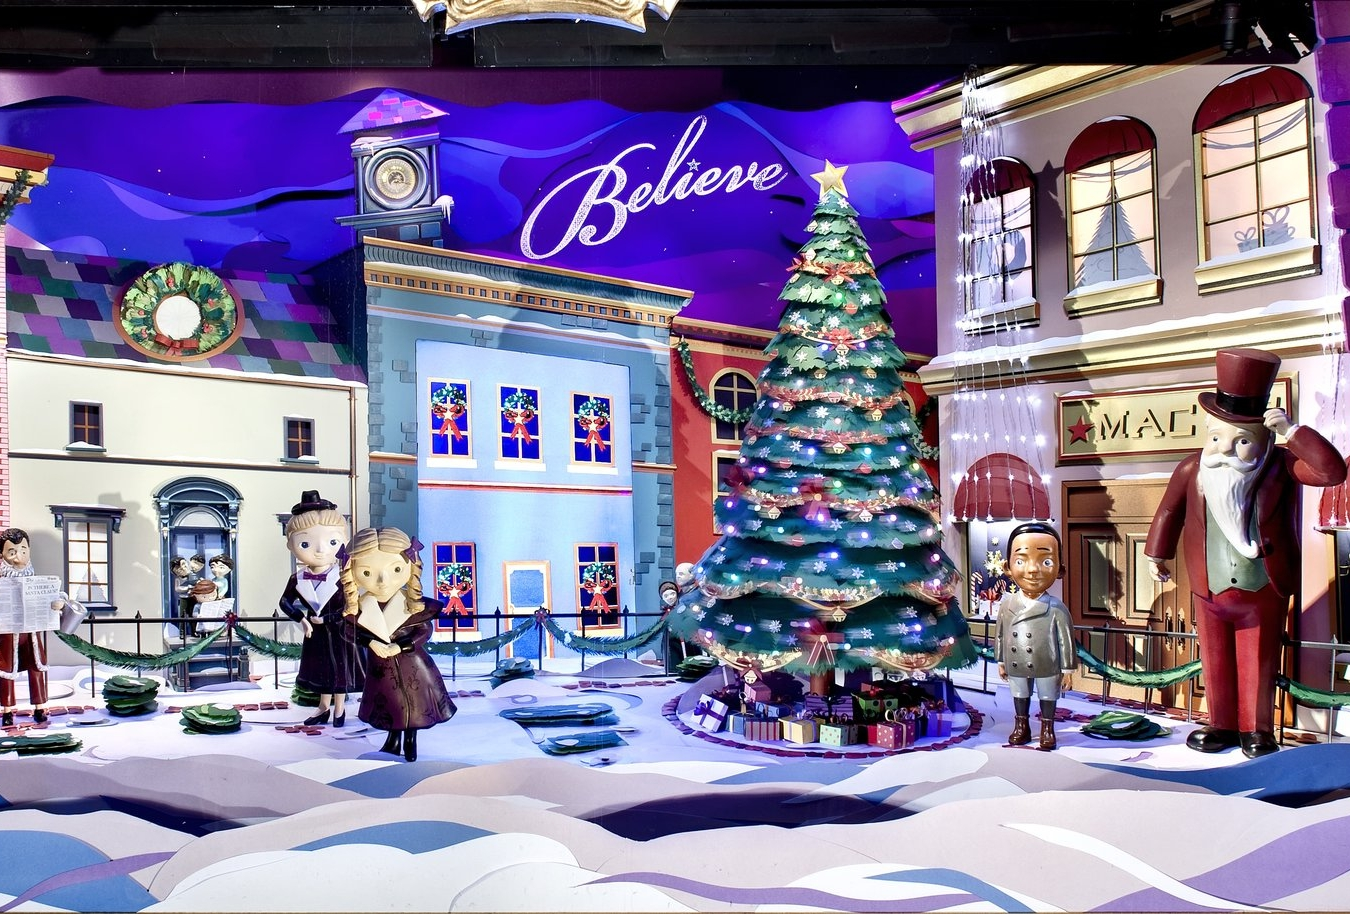 MACYS HOLIDAY WINDOWS - Venue: MACYS Herald Square - NYCPhotography: Bruce Plotkin & Macy's VM